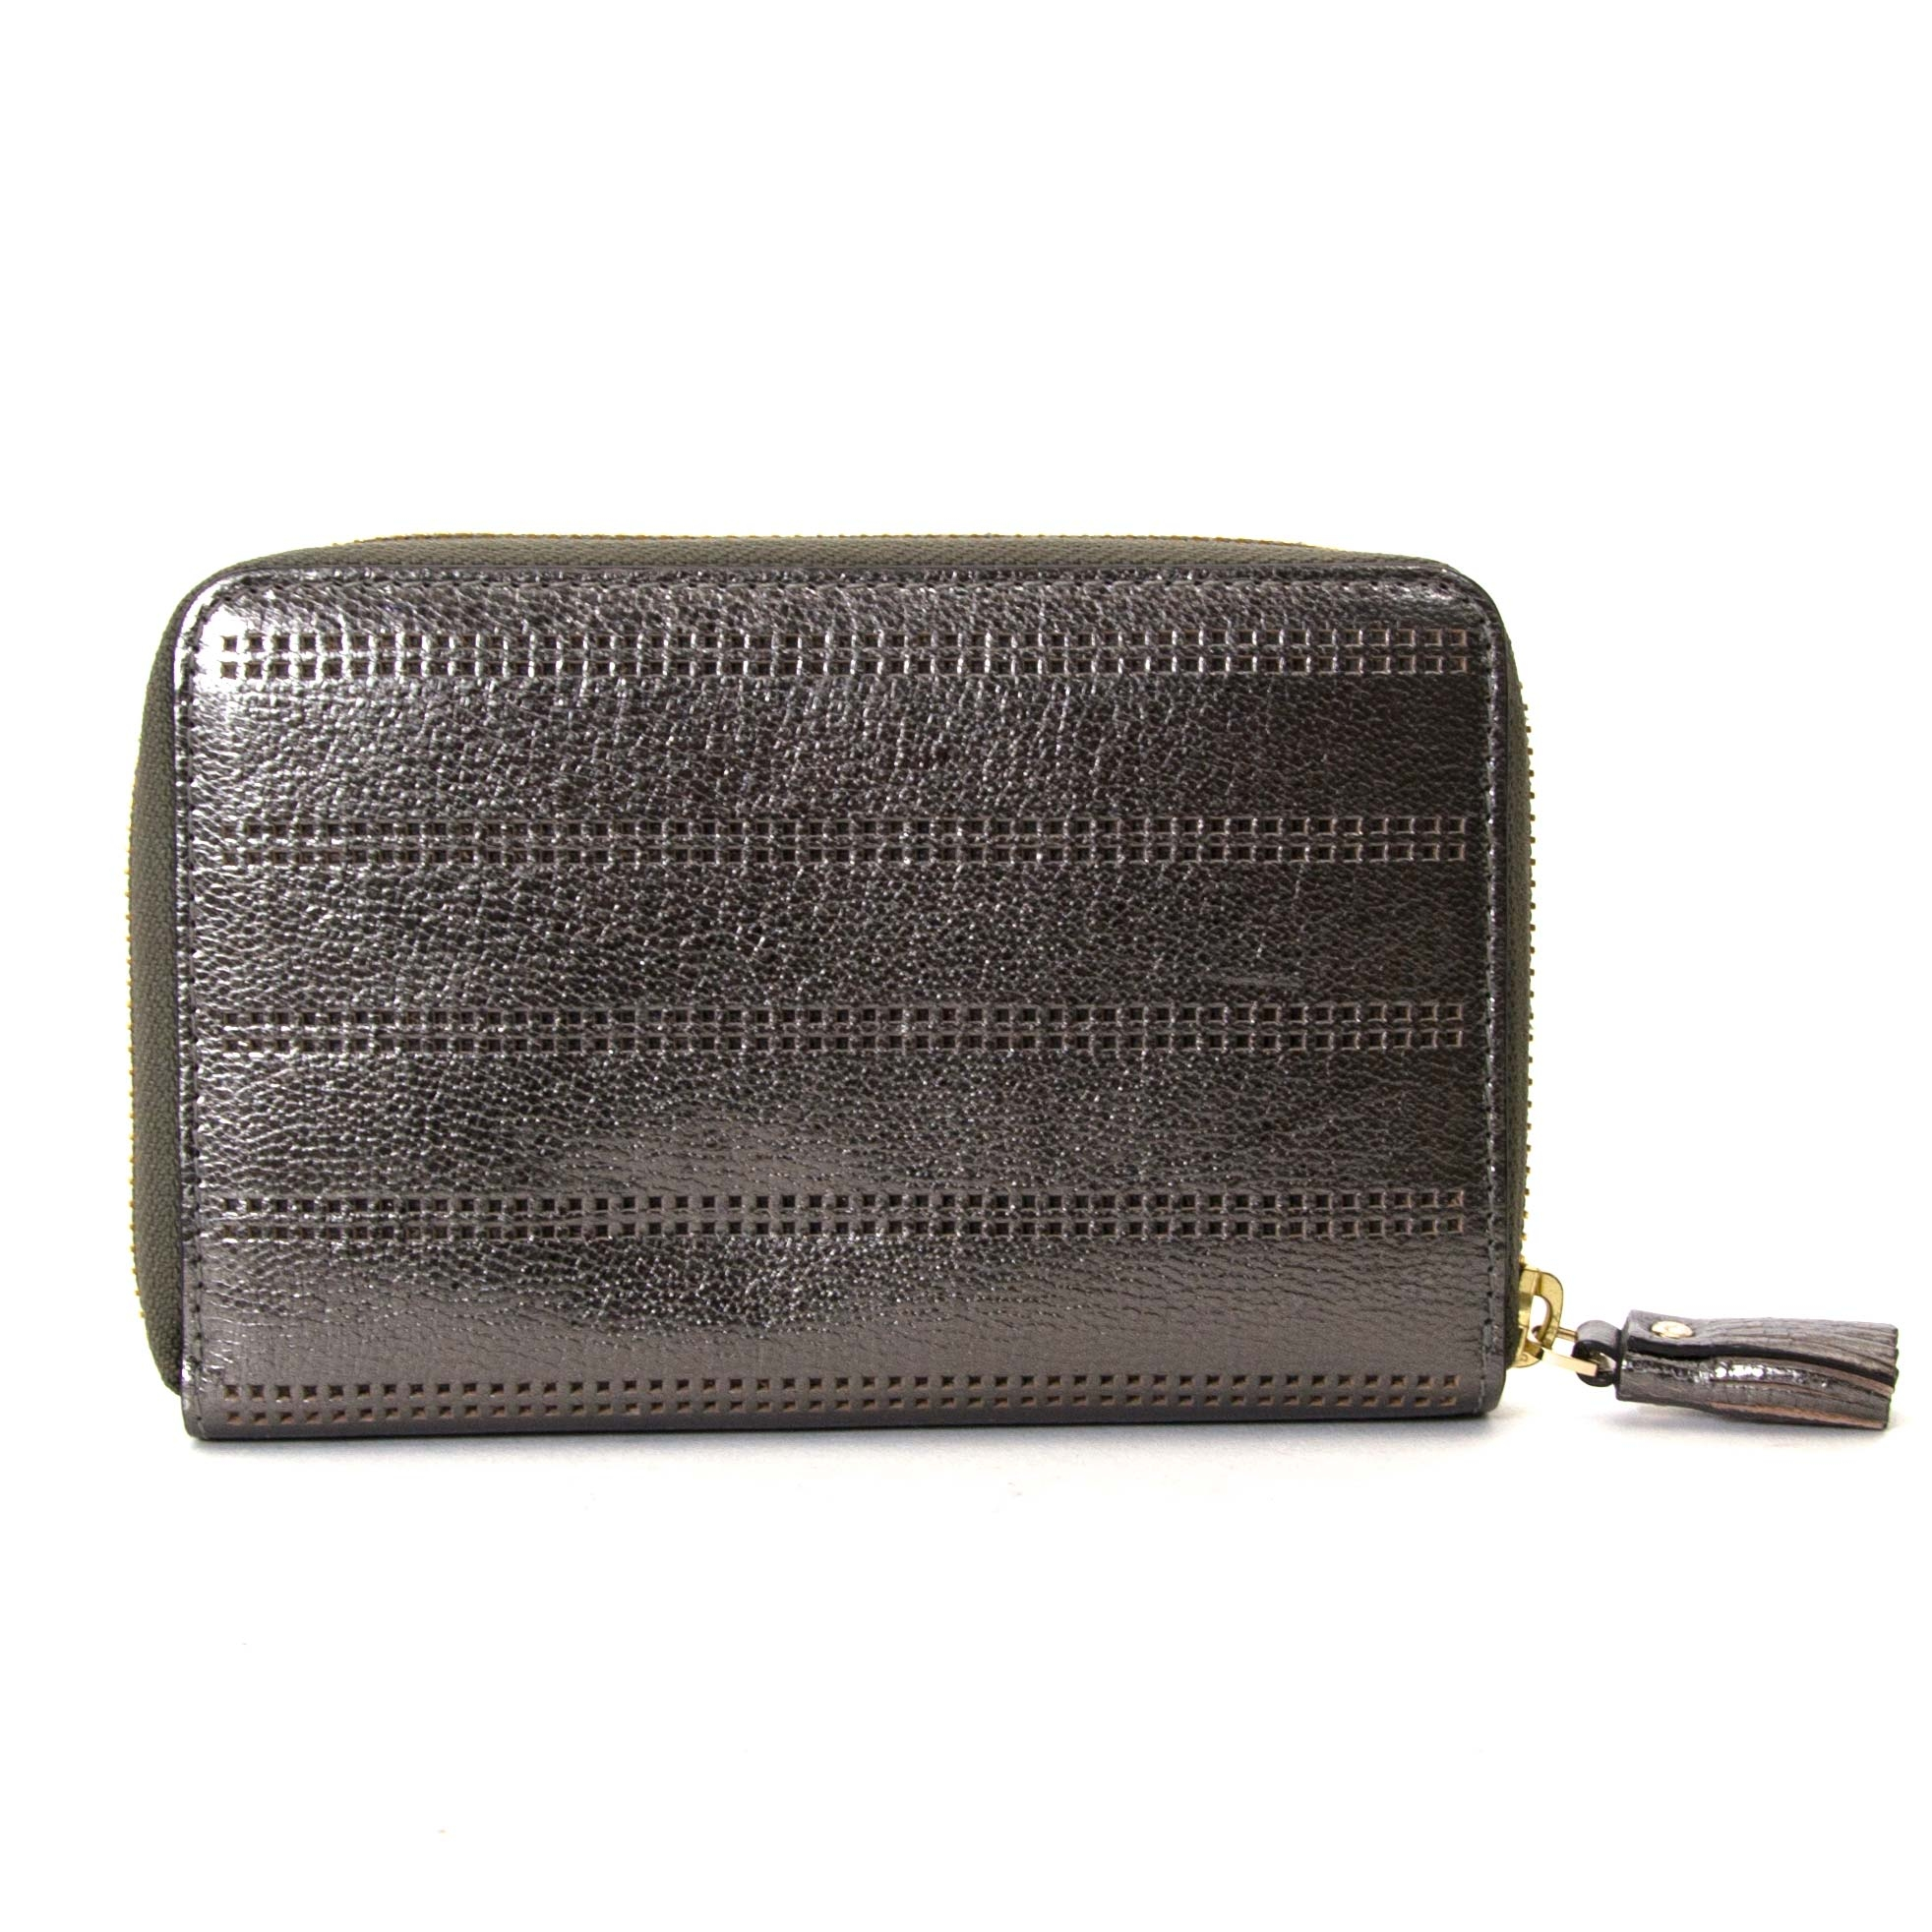 anya hindmarch metallic wallet now for sale at labellov vintage fashion webshop belgium